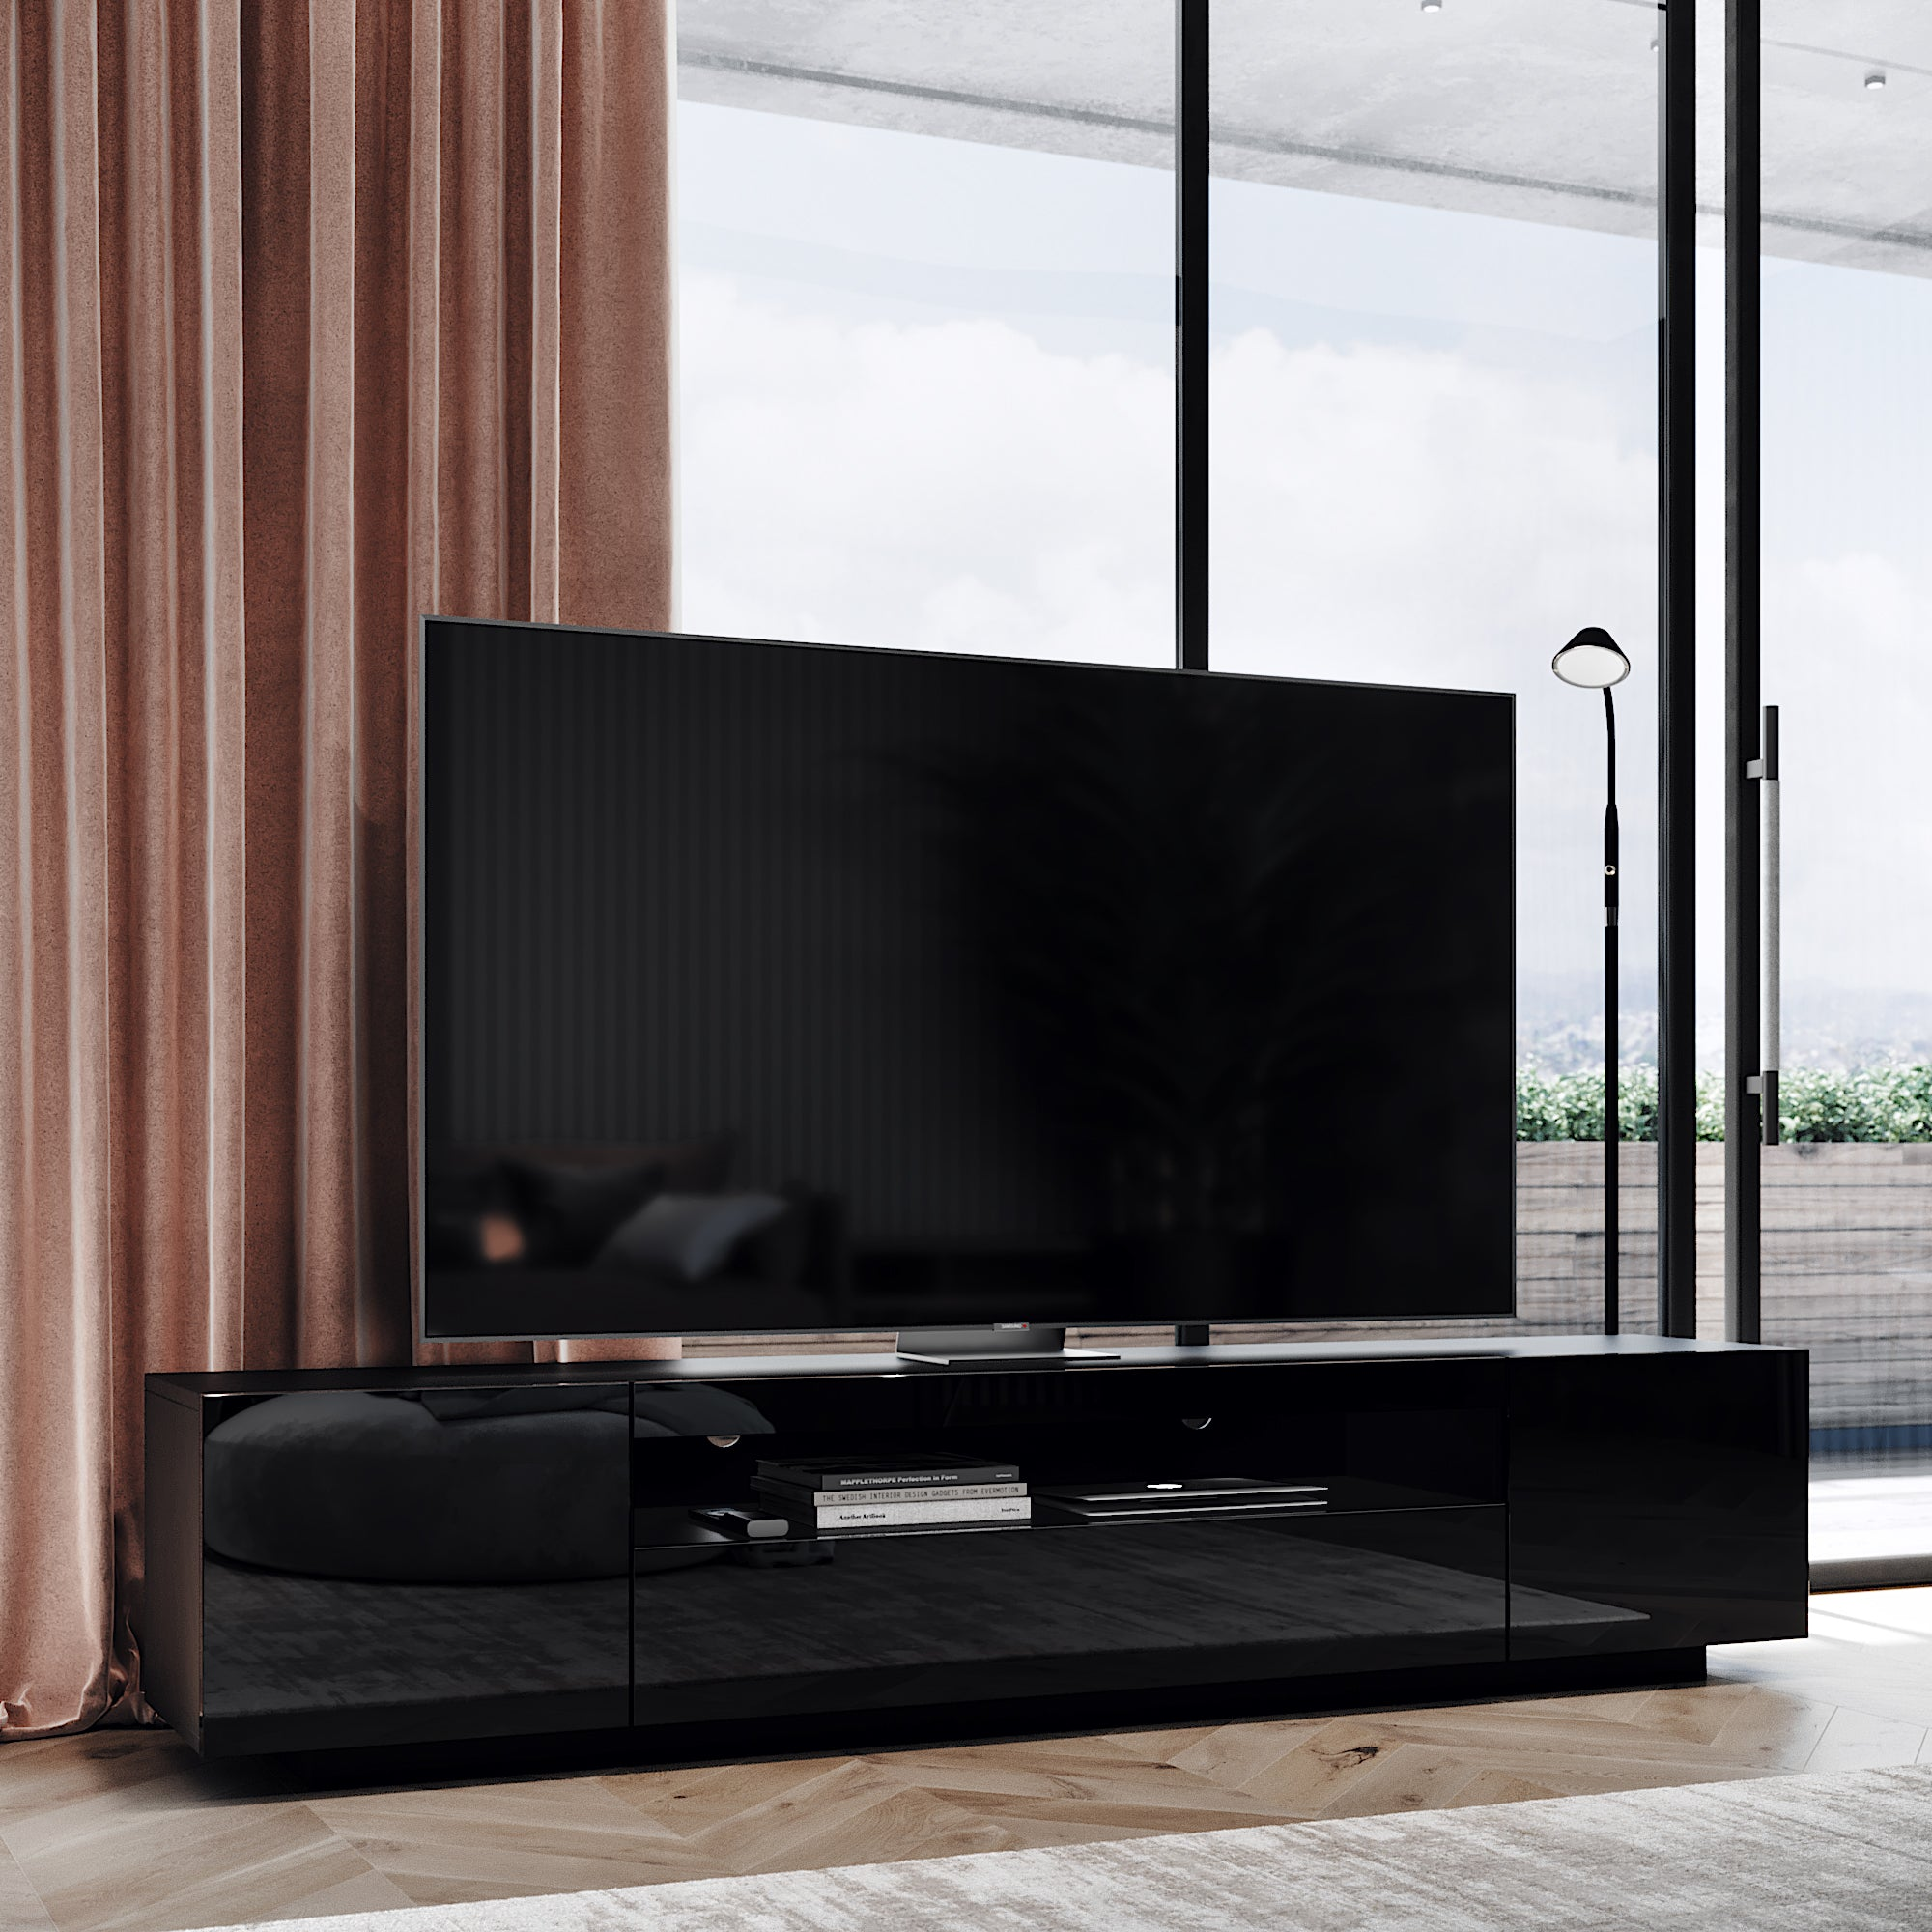 Modern European TV Cabinet, SAMSO Black TV Cabinet